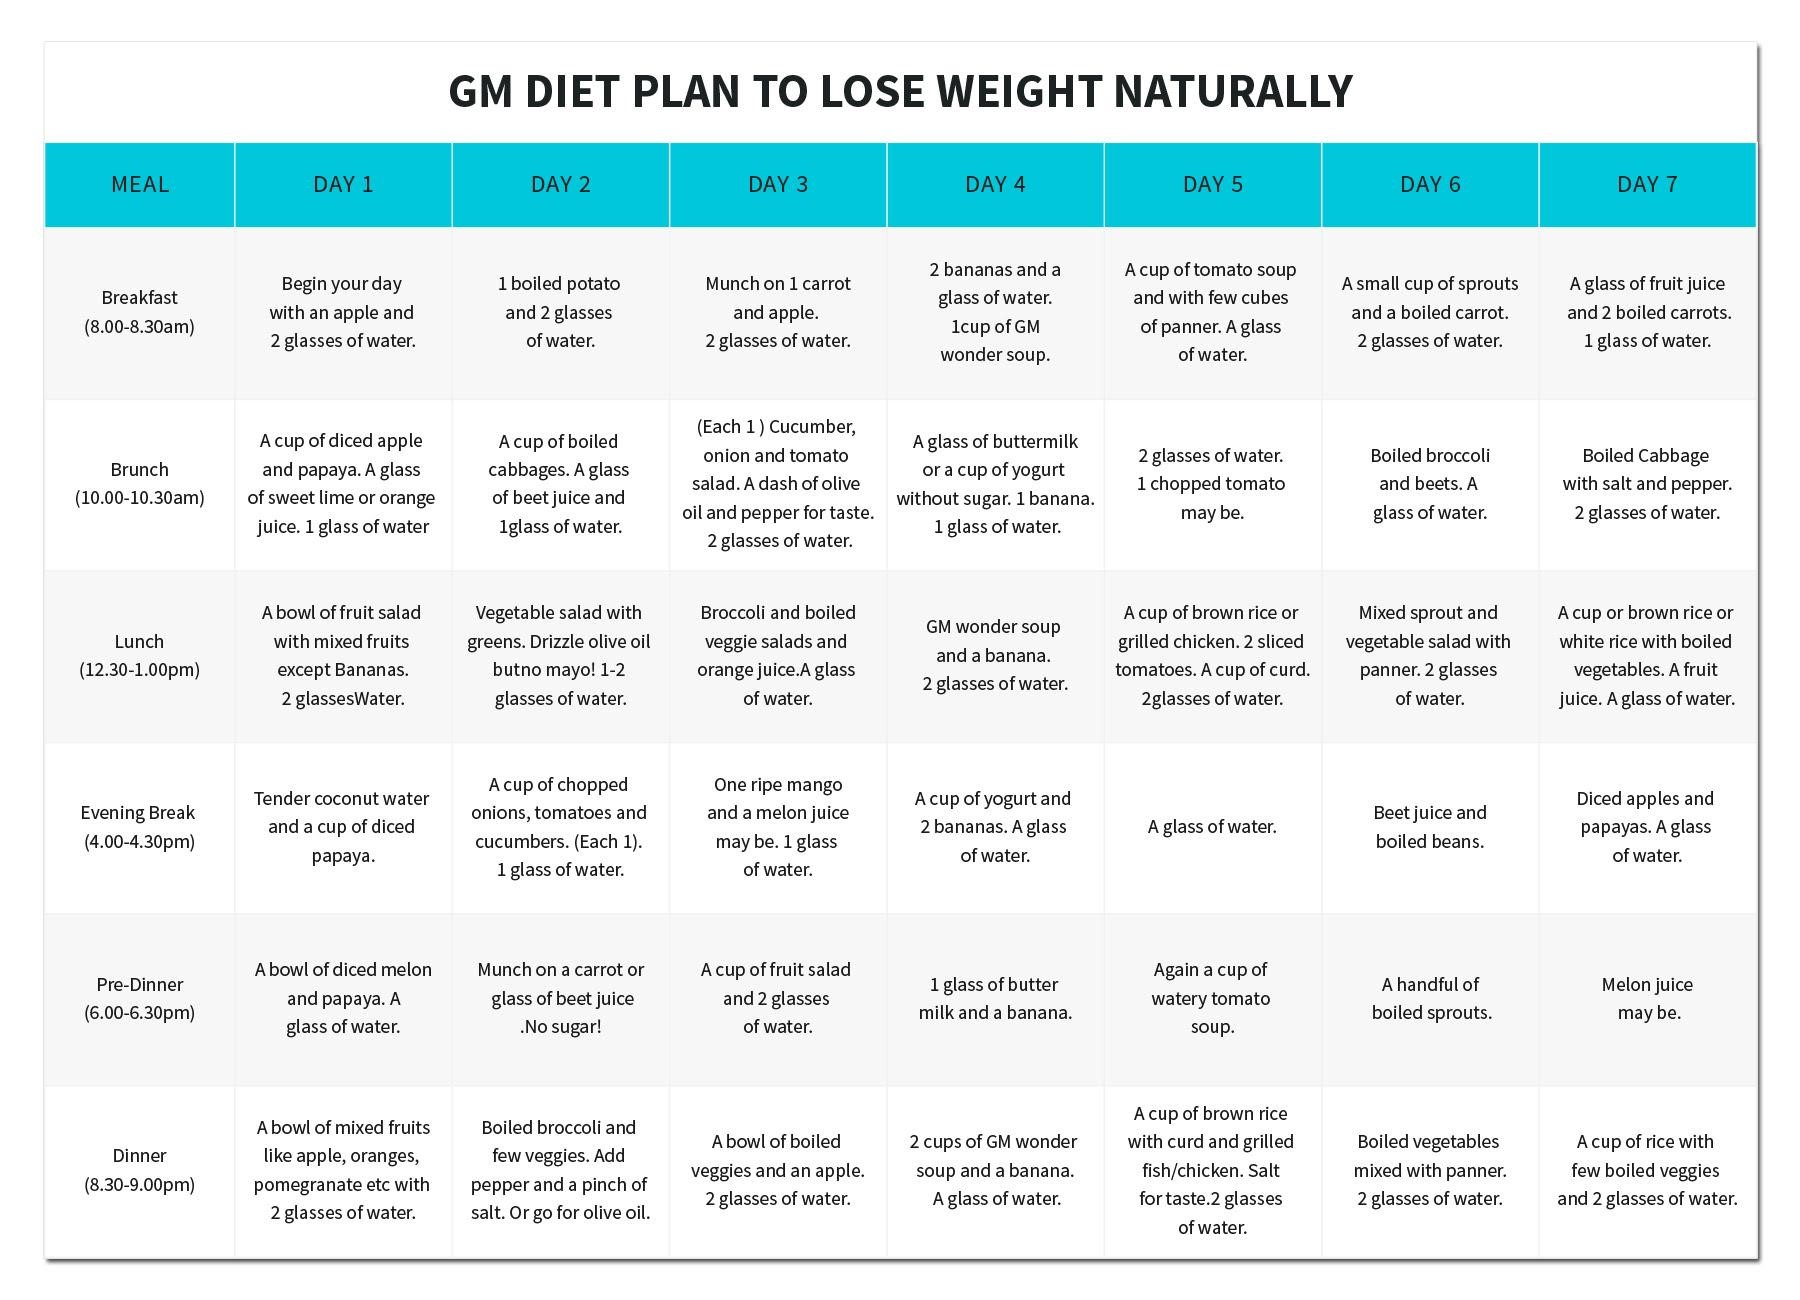 Gm diet plan to lose weight loss naturally